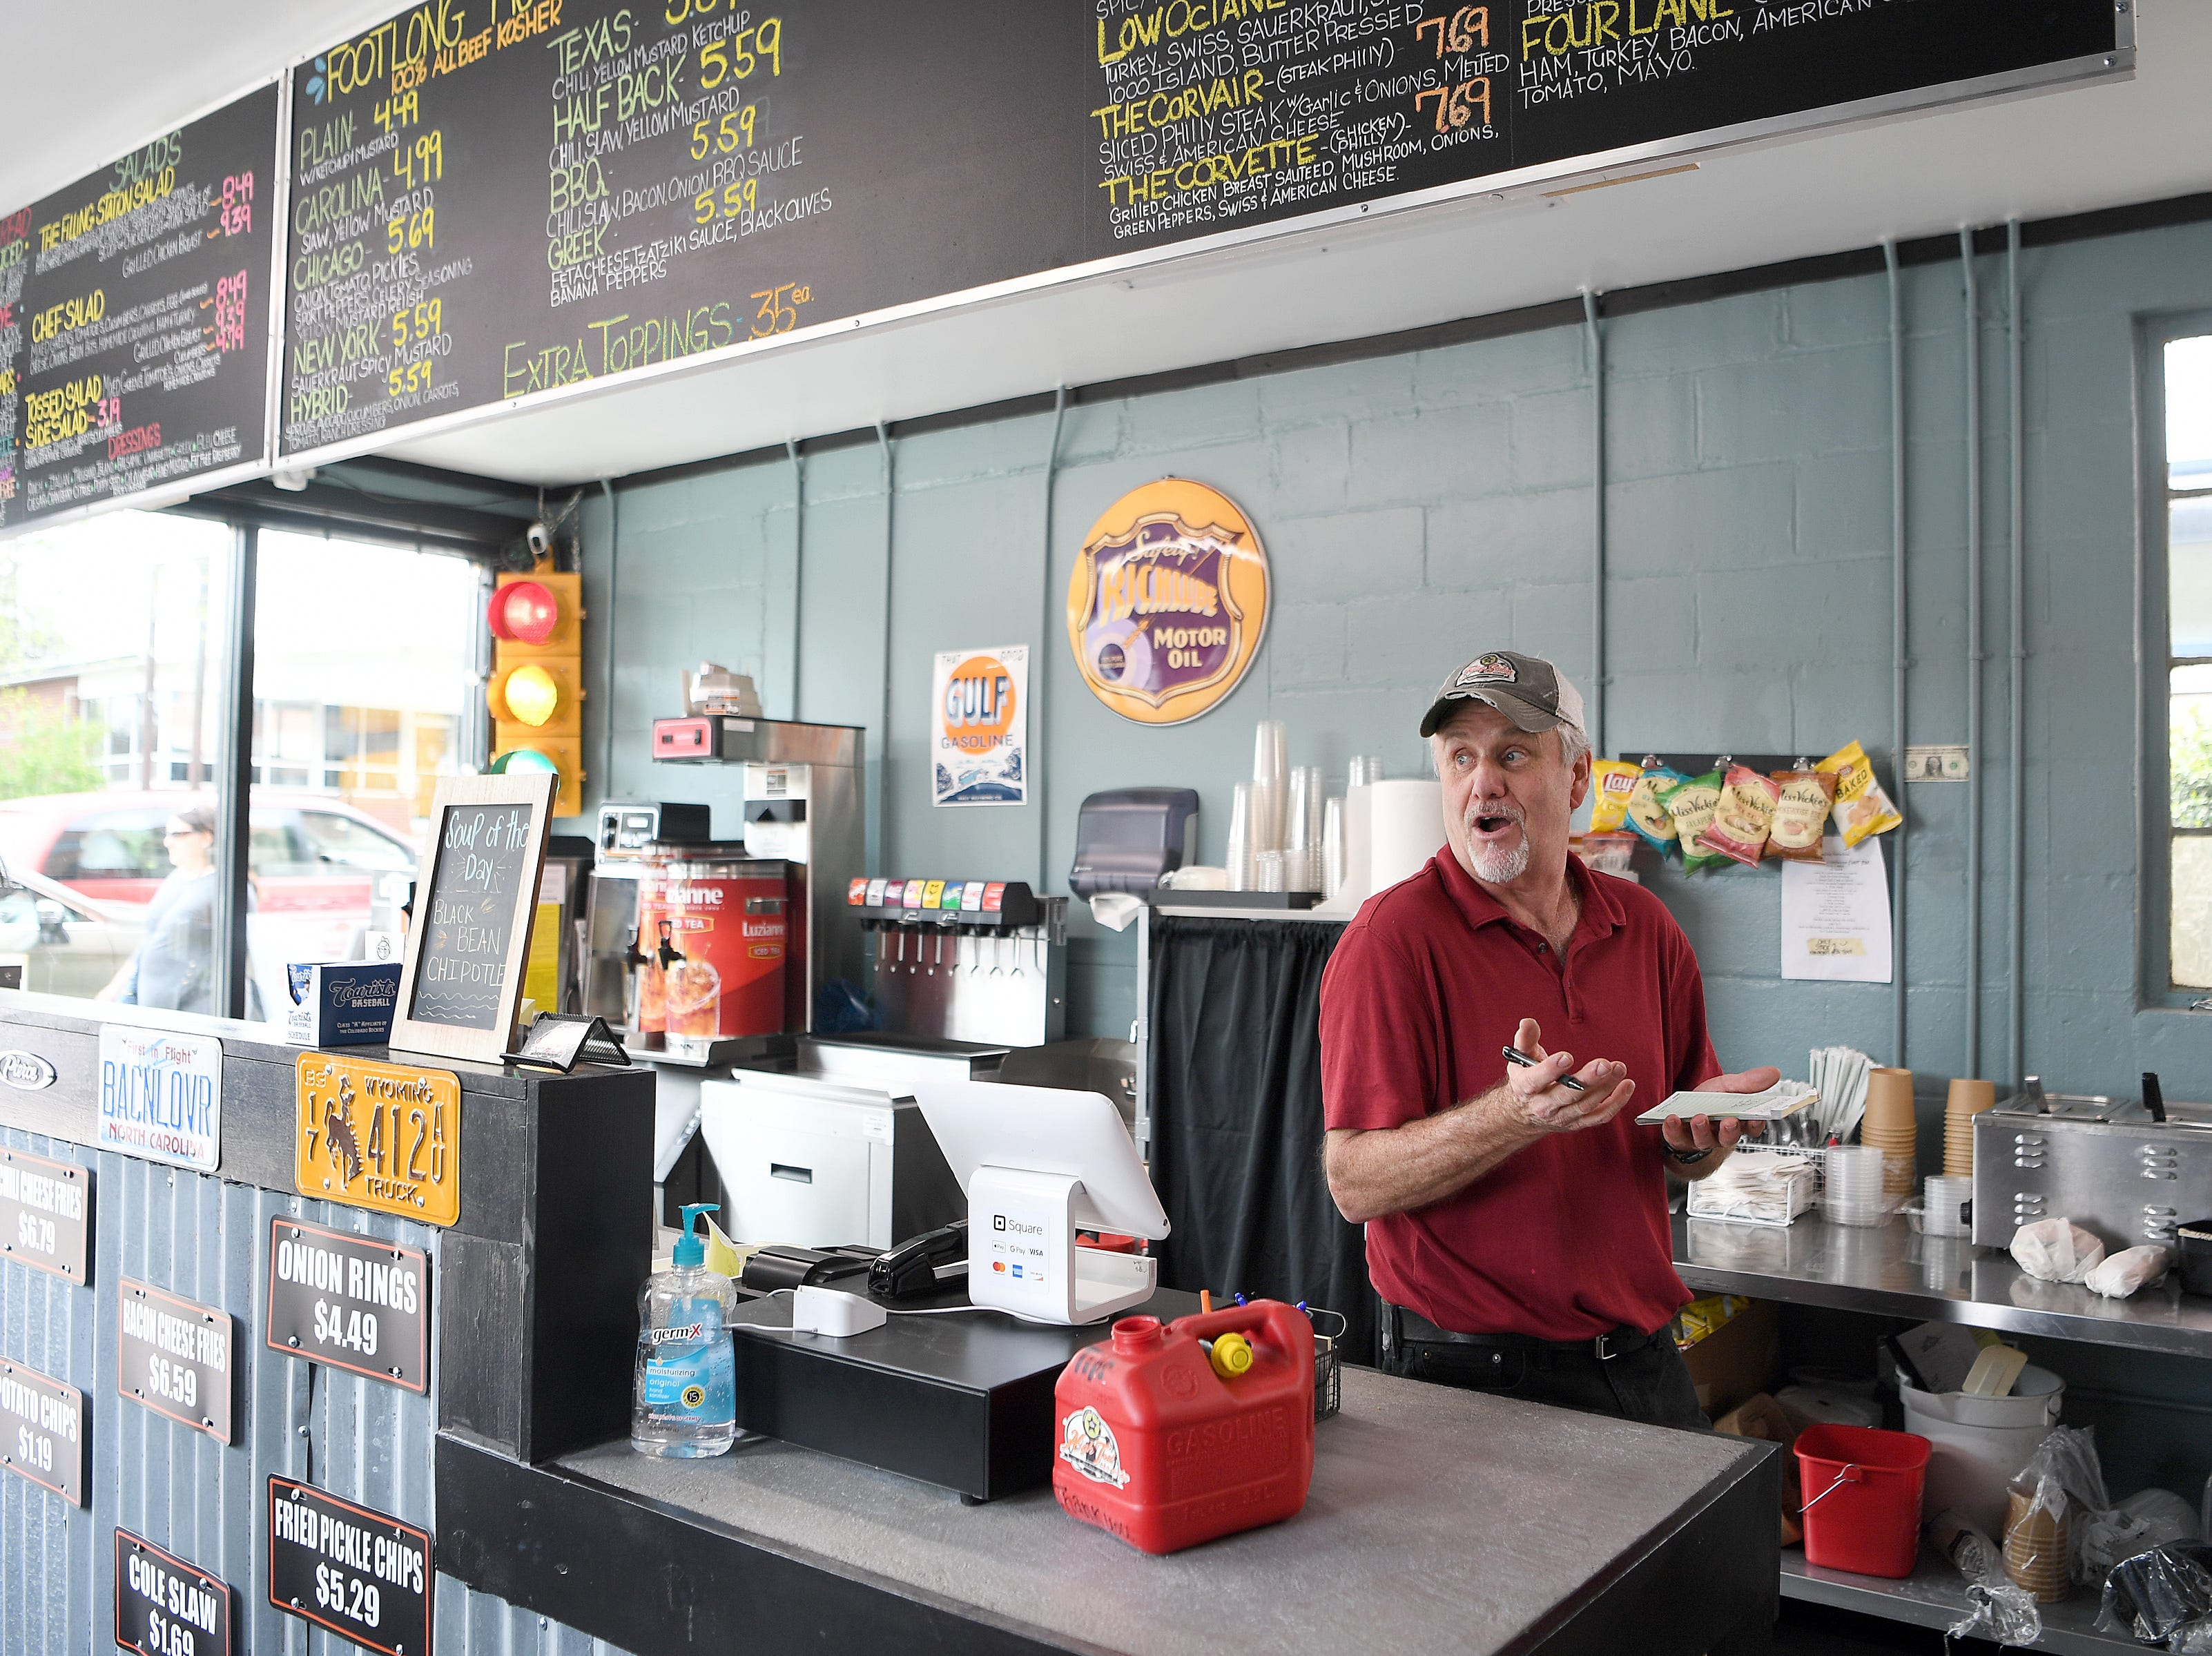 Barry Tetrault, owner of High Test Deli and Sweet Shop, takes a customer's order at his Asheville South Slope location on April 12, 2019.